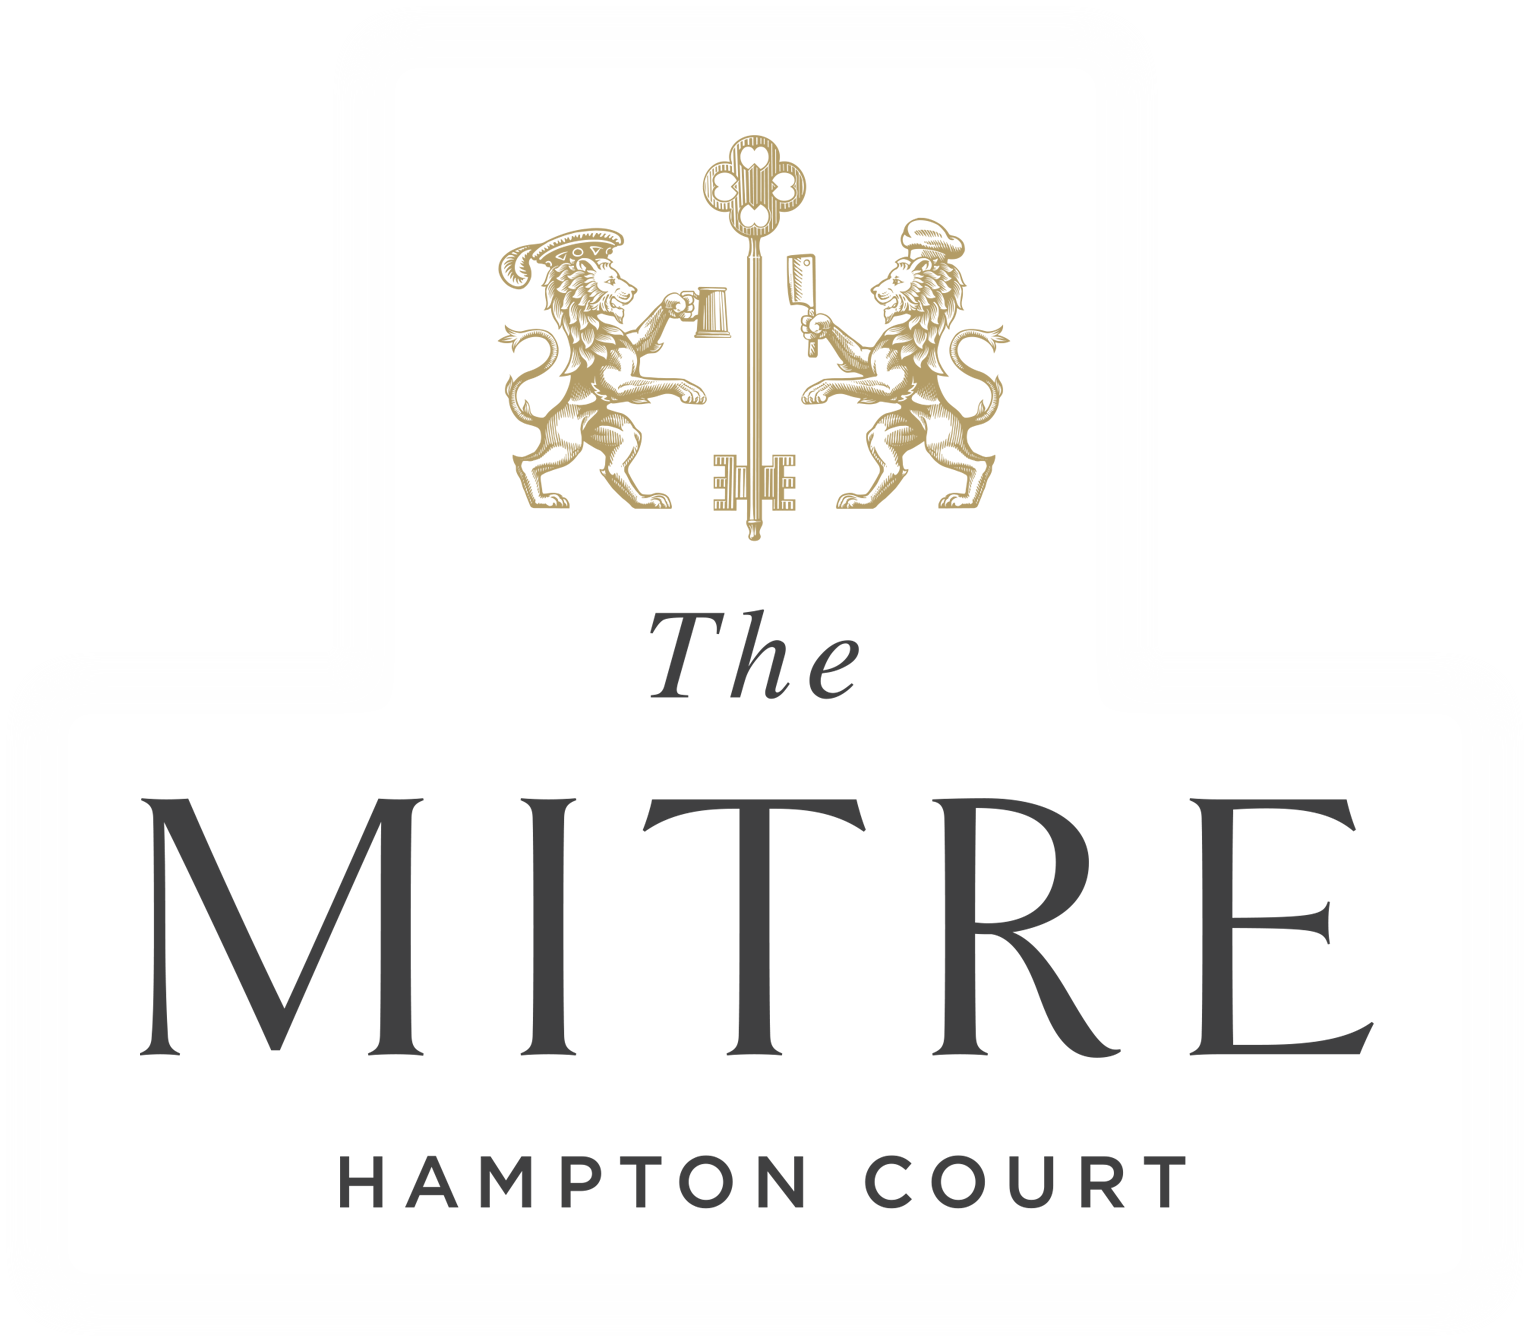 The Mitre Hampton Court